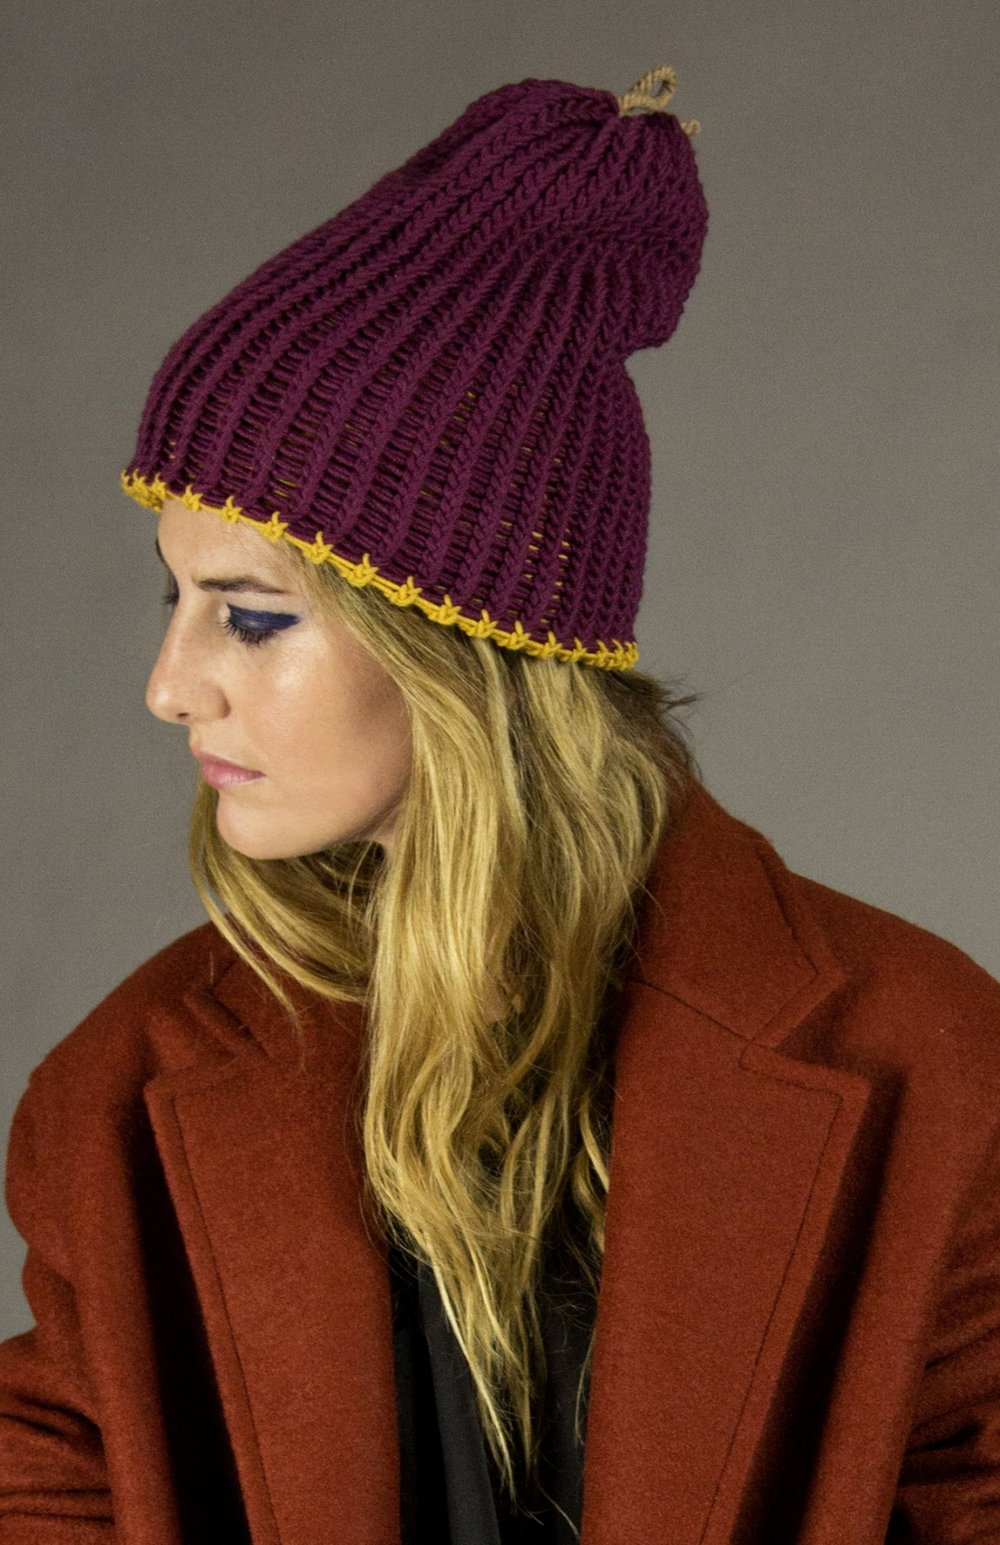 hat 3 deep purple/gold  hand knit long shoreman cap - reversible super washed worsted wool. signature natural melange rope knotted cufflink detail.  one-size  100% super-washed wool